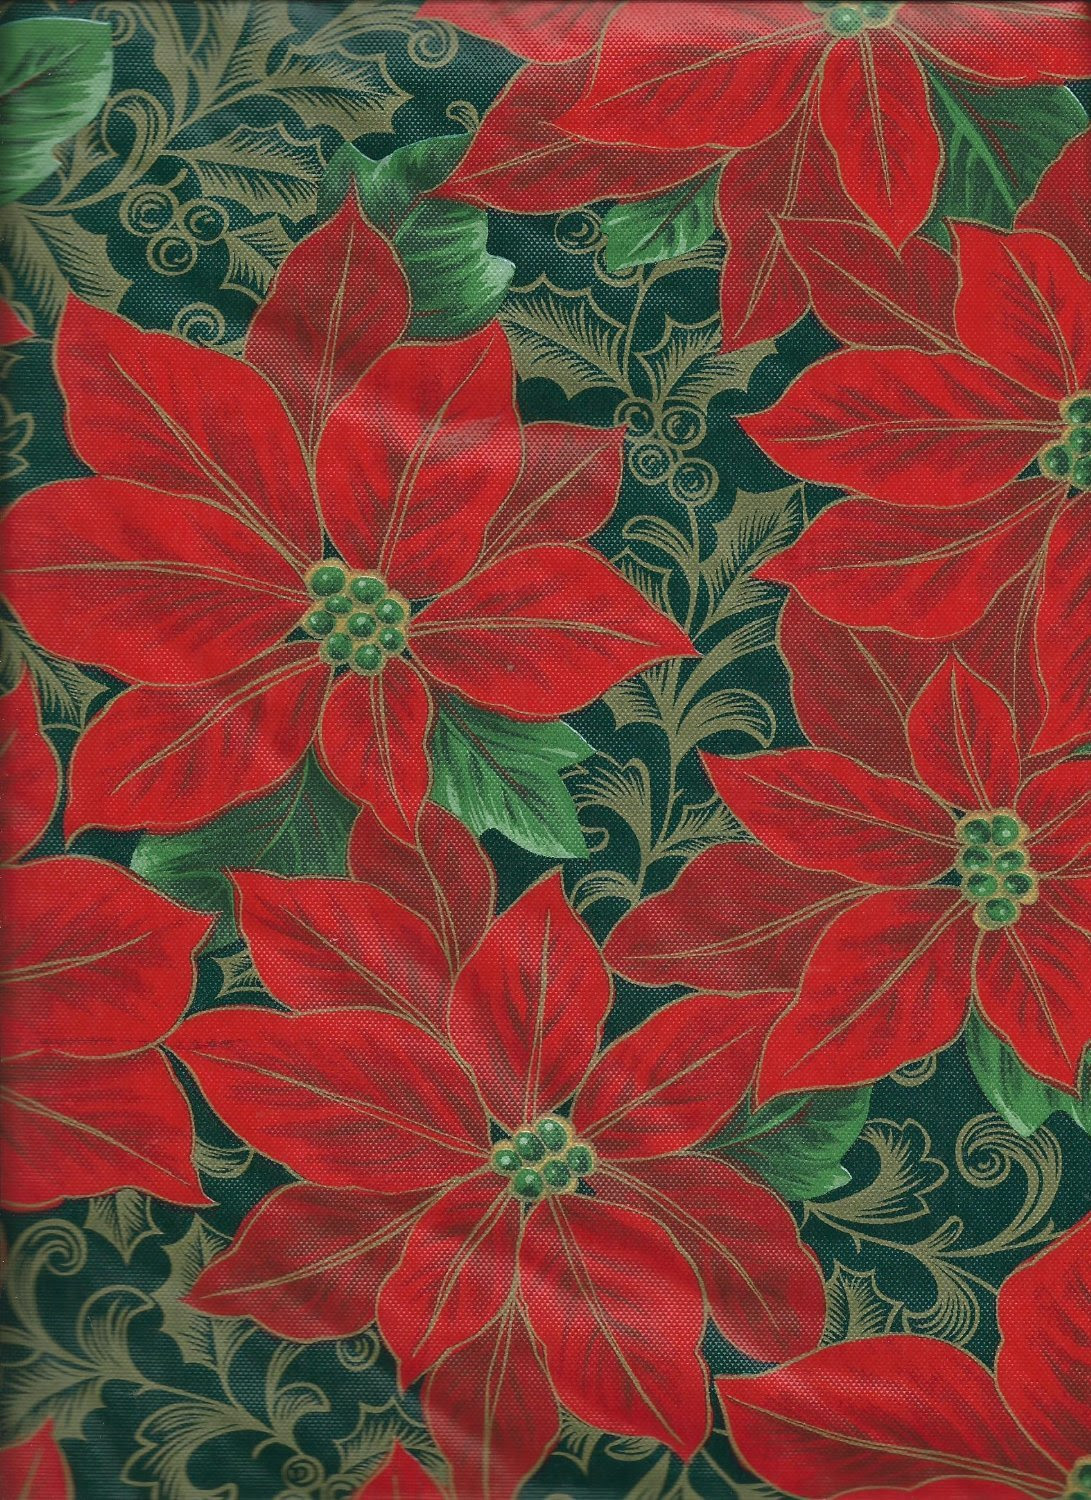 Poinsettia Vinyl And Plastic Table Covers Christmas Wikii